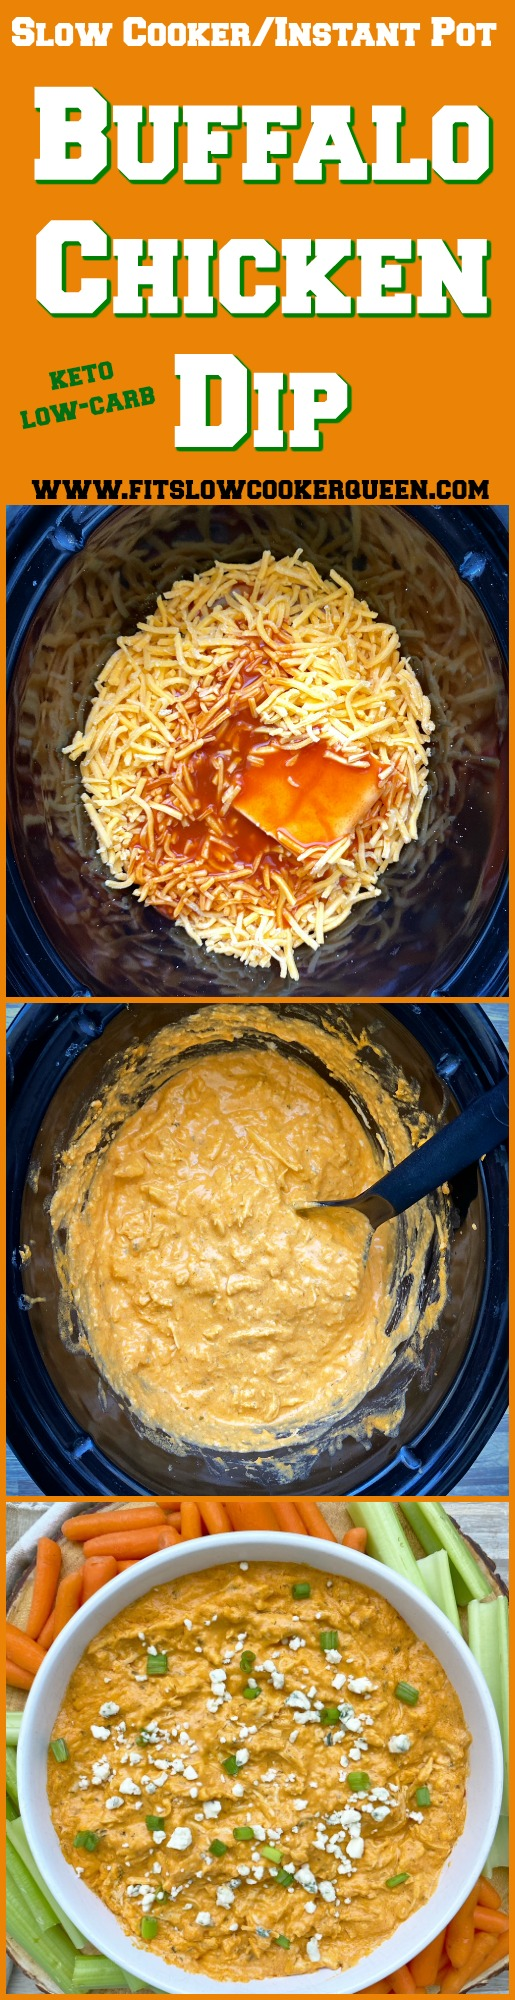 another pinterest pin for Slow Cooker_Instant Pot Low-Carb Buffalo Chicken Dip (Keto)